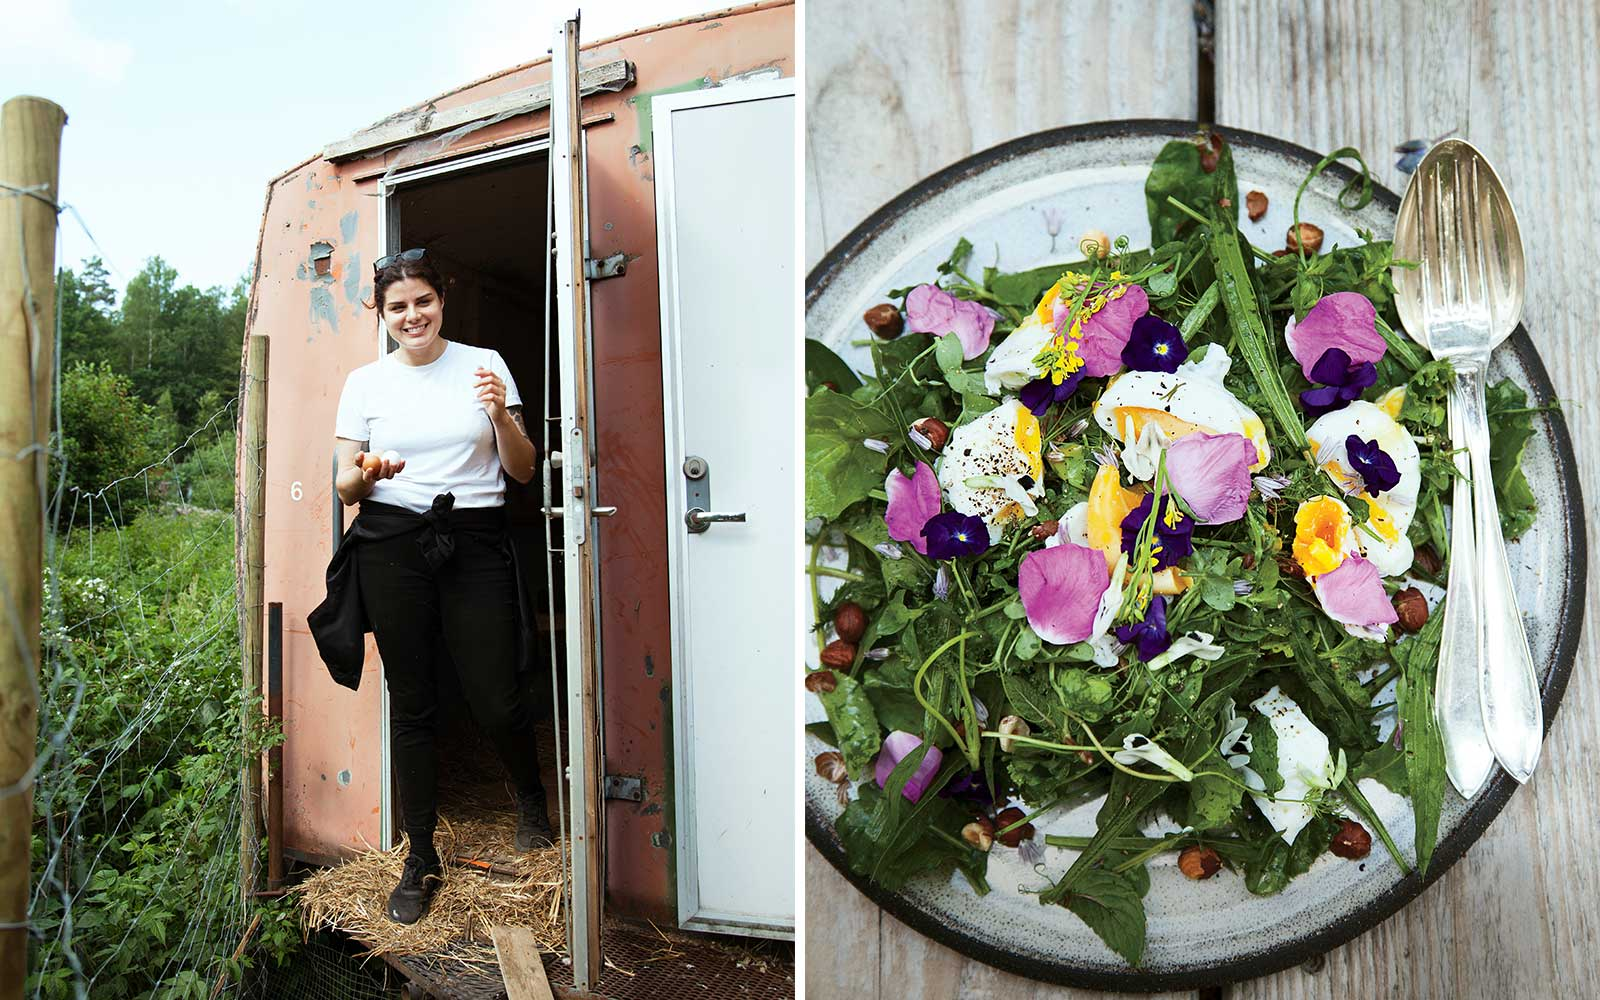 Chef Rosio Sanchez gathering eggs, and a salad of foraged greens, at Stedsans in the Woods, in Sweden